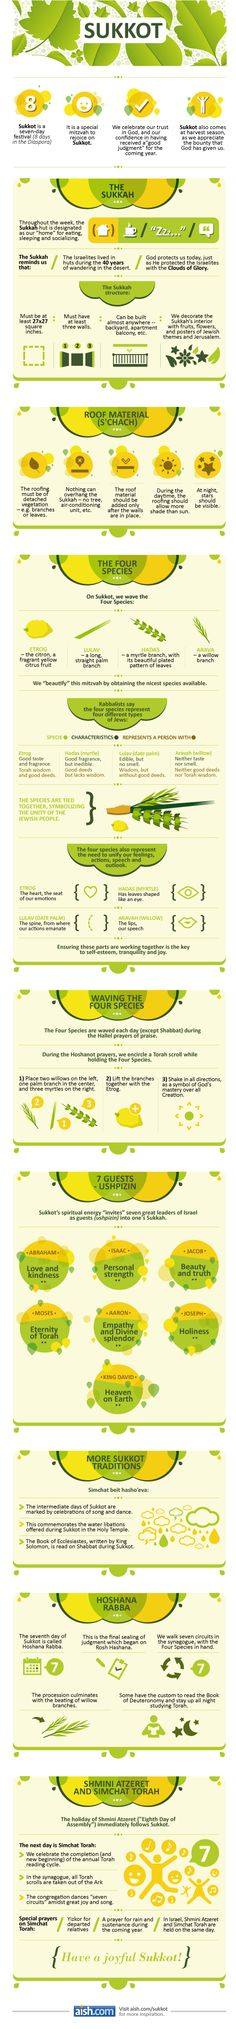 Sukkot  [by Aish -- via #tipsographic]. More at tipsographic.com. This is an amazing example for a potential project for the students.